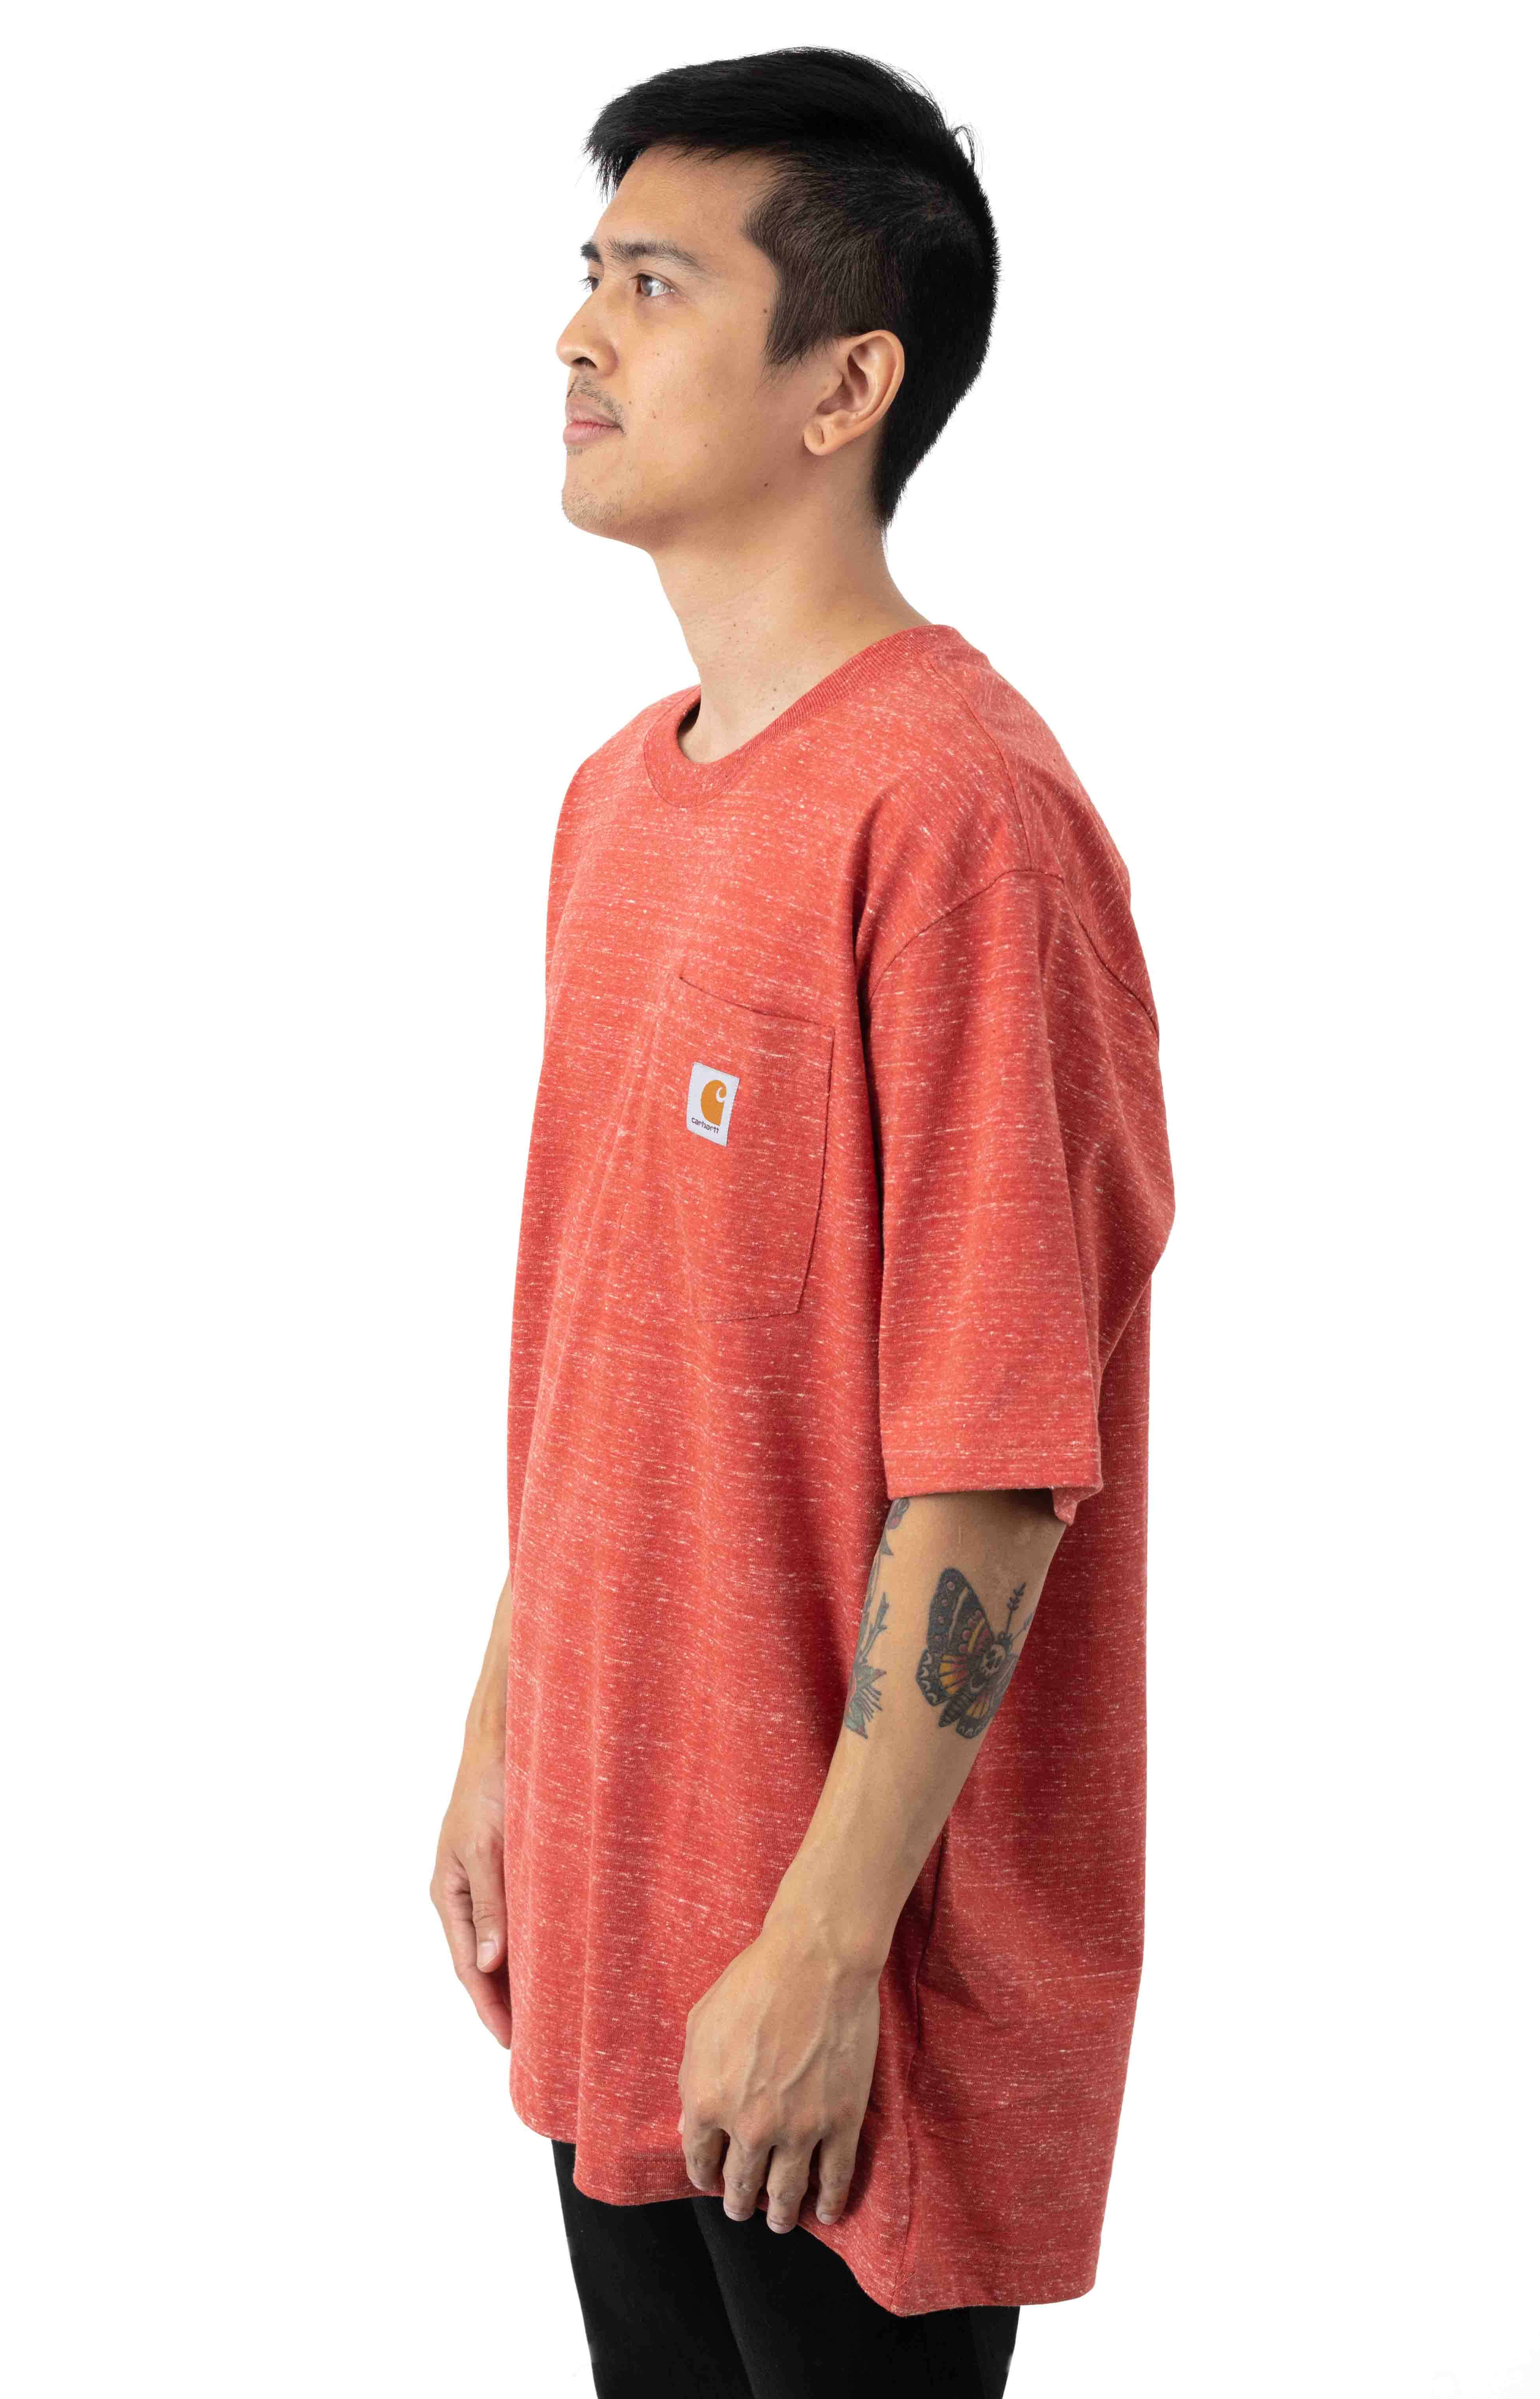 (K87) Workwear Pocket T-Shirt - Cayenne Snow Heather 2